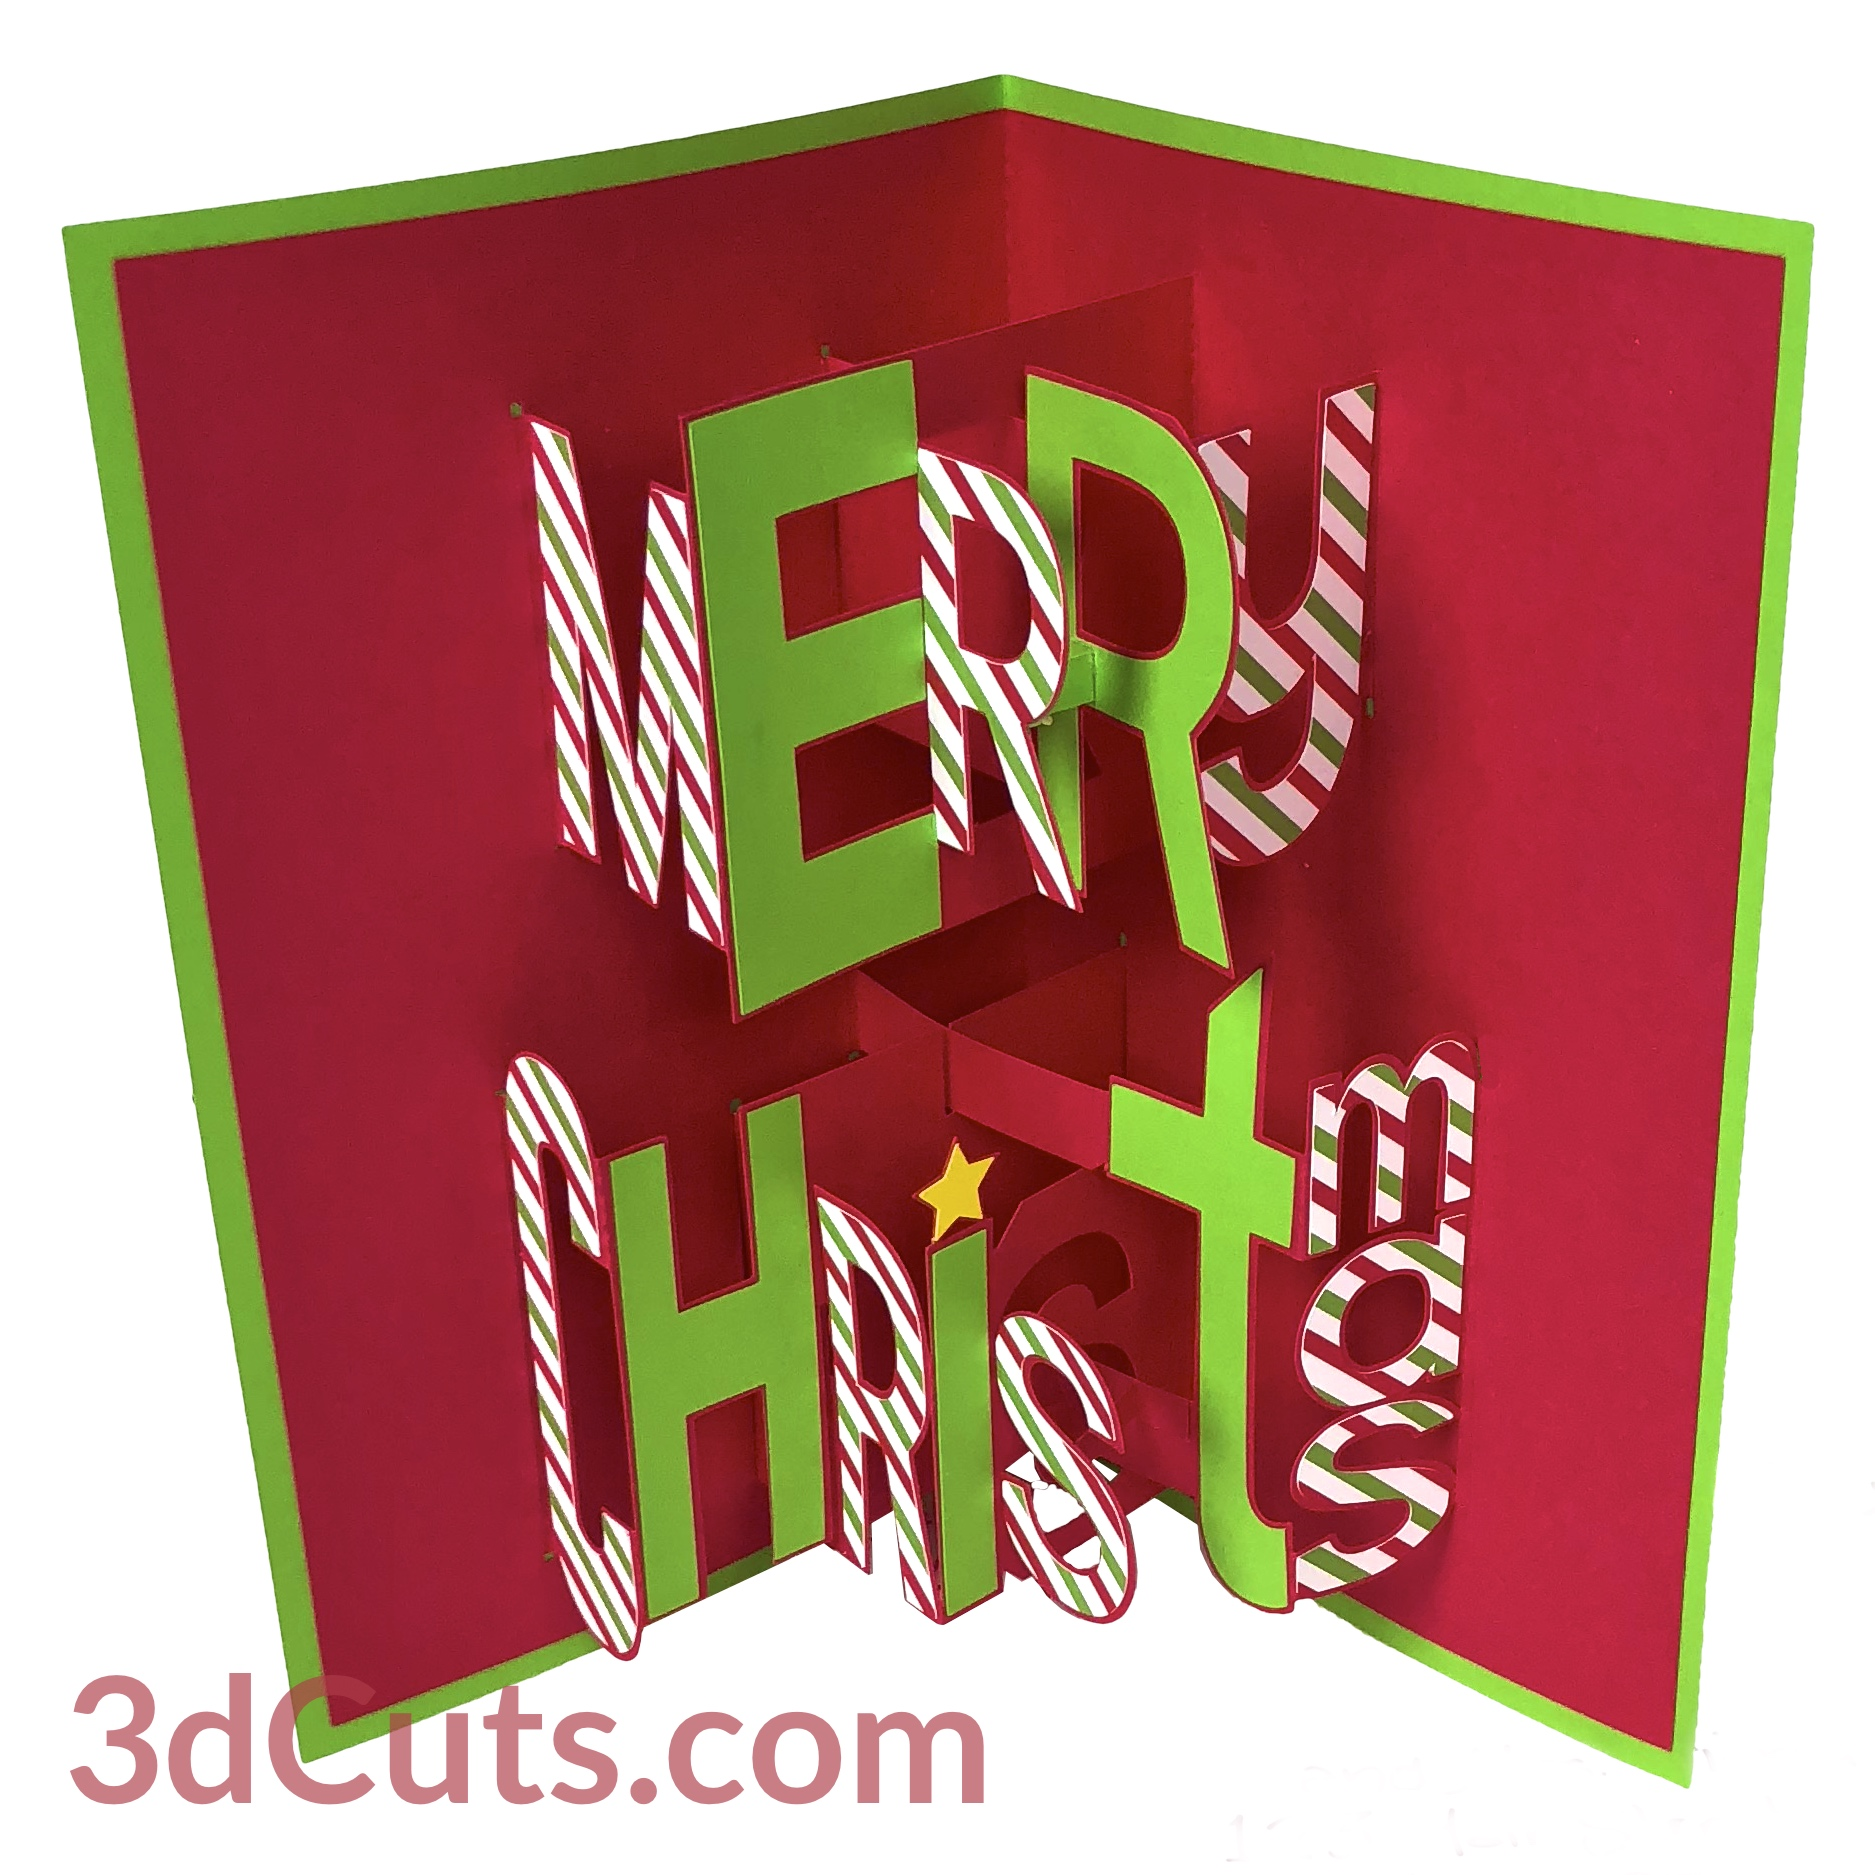 Merry Christmas card 3d pop-up with whimsy font, 3DCuts.com, Marji Roy, 3D cutting files in .svg, .dxf, and .pdf formats for use with Silhouette, Cricut and other cutting machines, paper crafting files